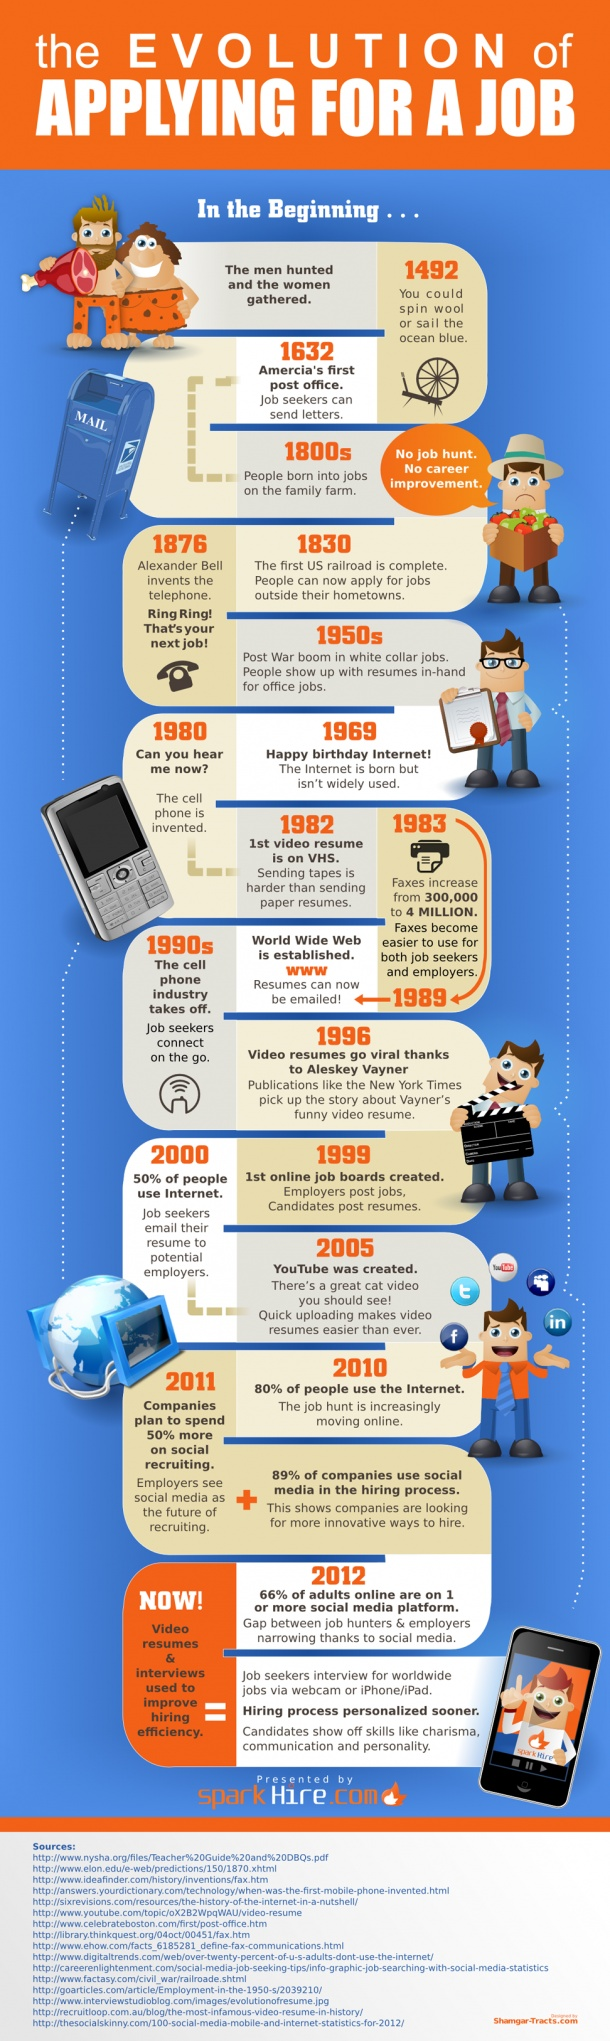 The Evolution of Applying For a Job [INFOGRAPHIC]